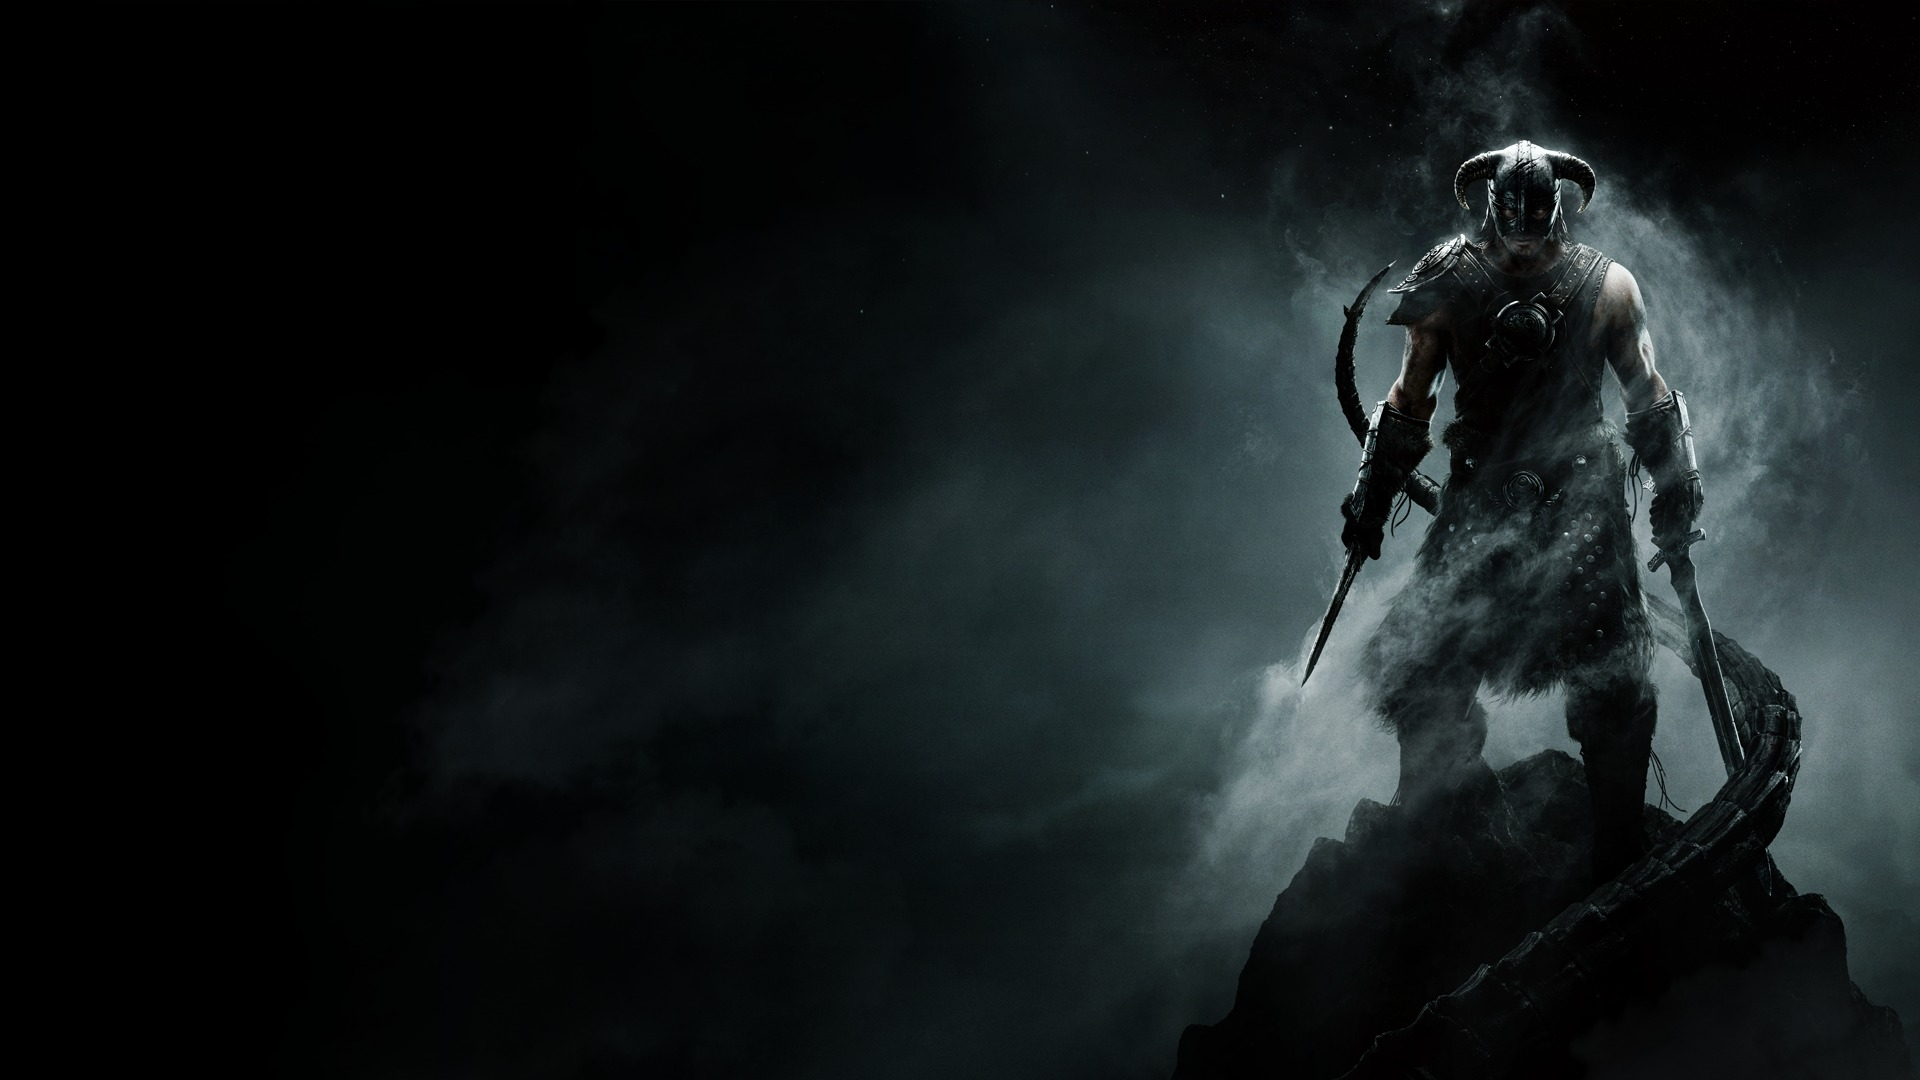 Wallpaper The Elder Scrolls V: Skyrim warrior with sword